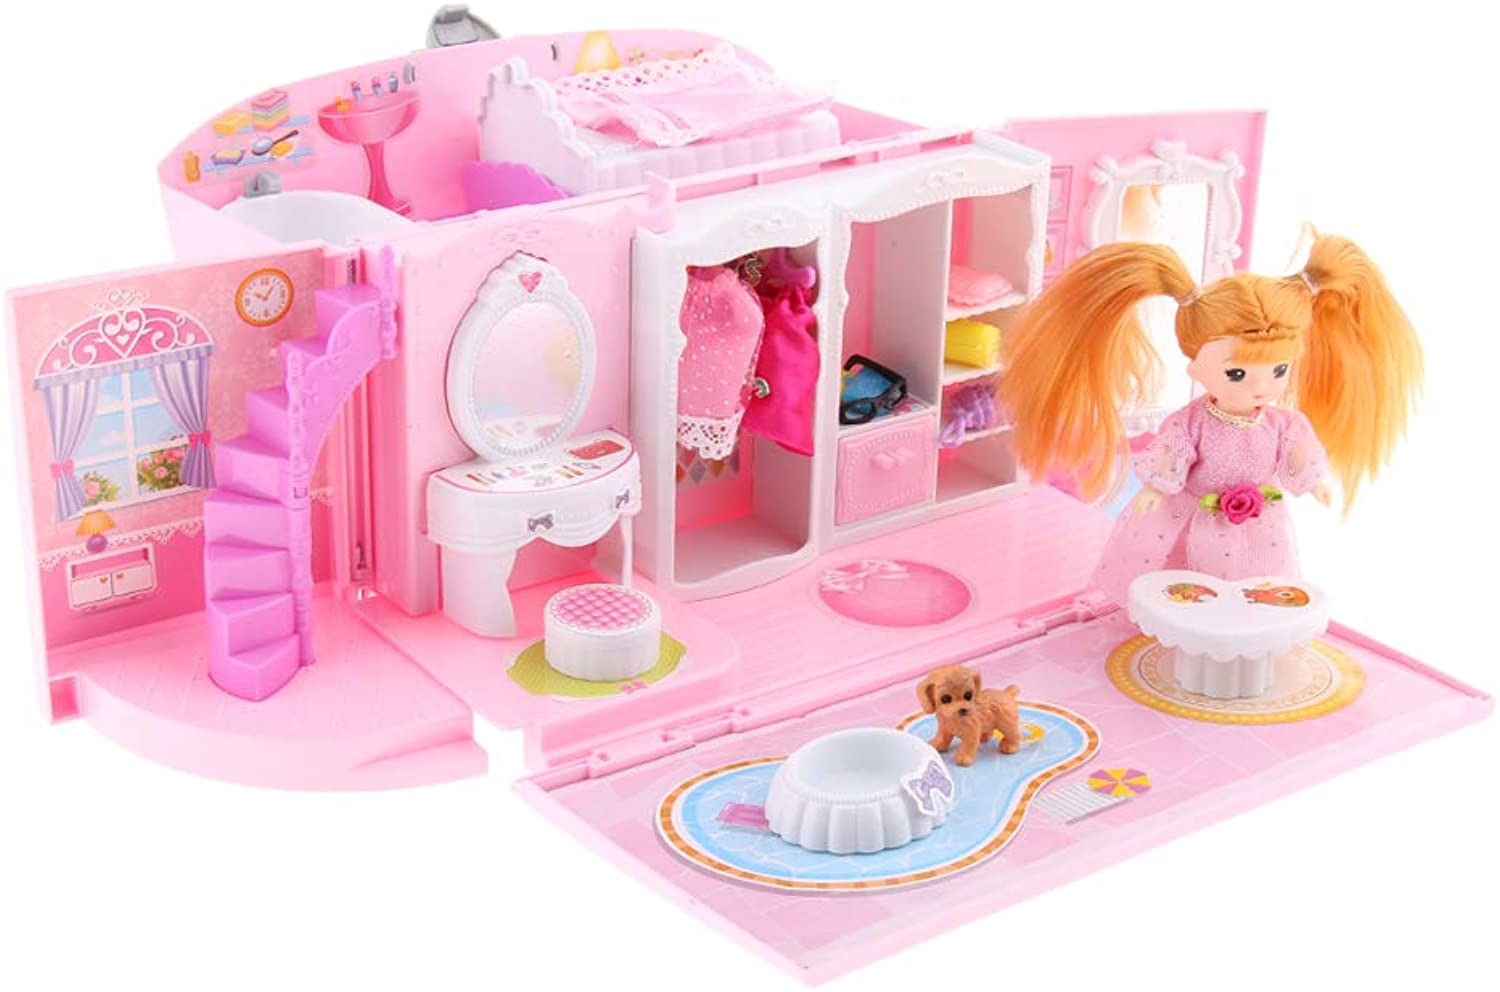 Homyl Portable Doll House Dollhouse w  Furniture and Other Accessories Kids Girls Pretend Play Toy, Pink, Ages 3 Years and Up